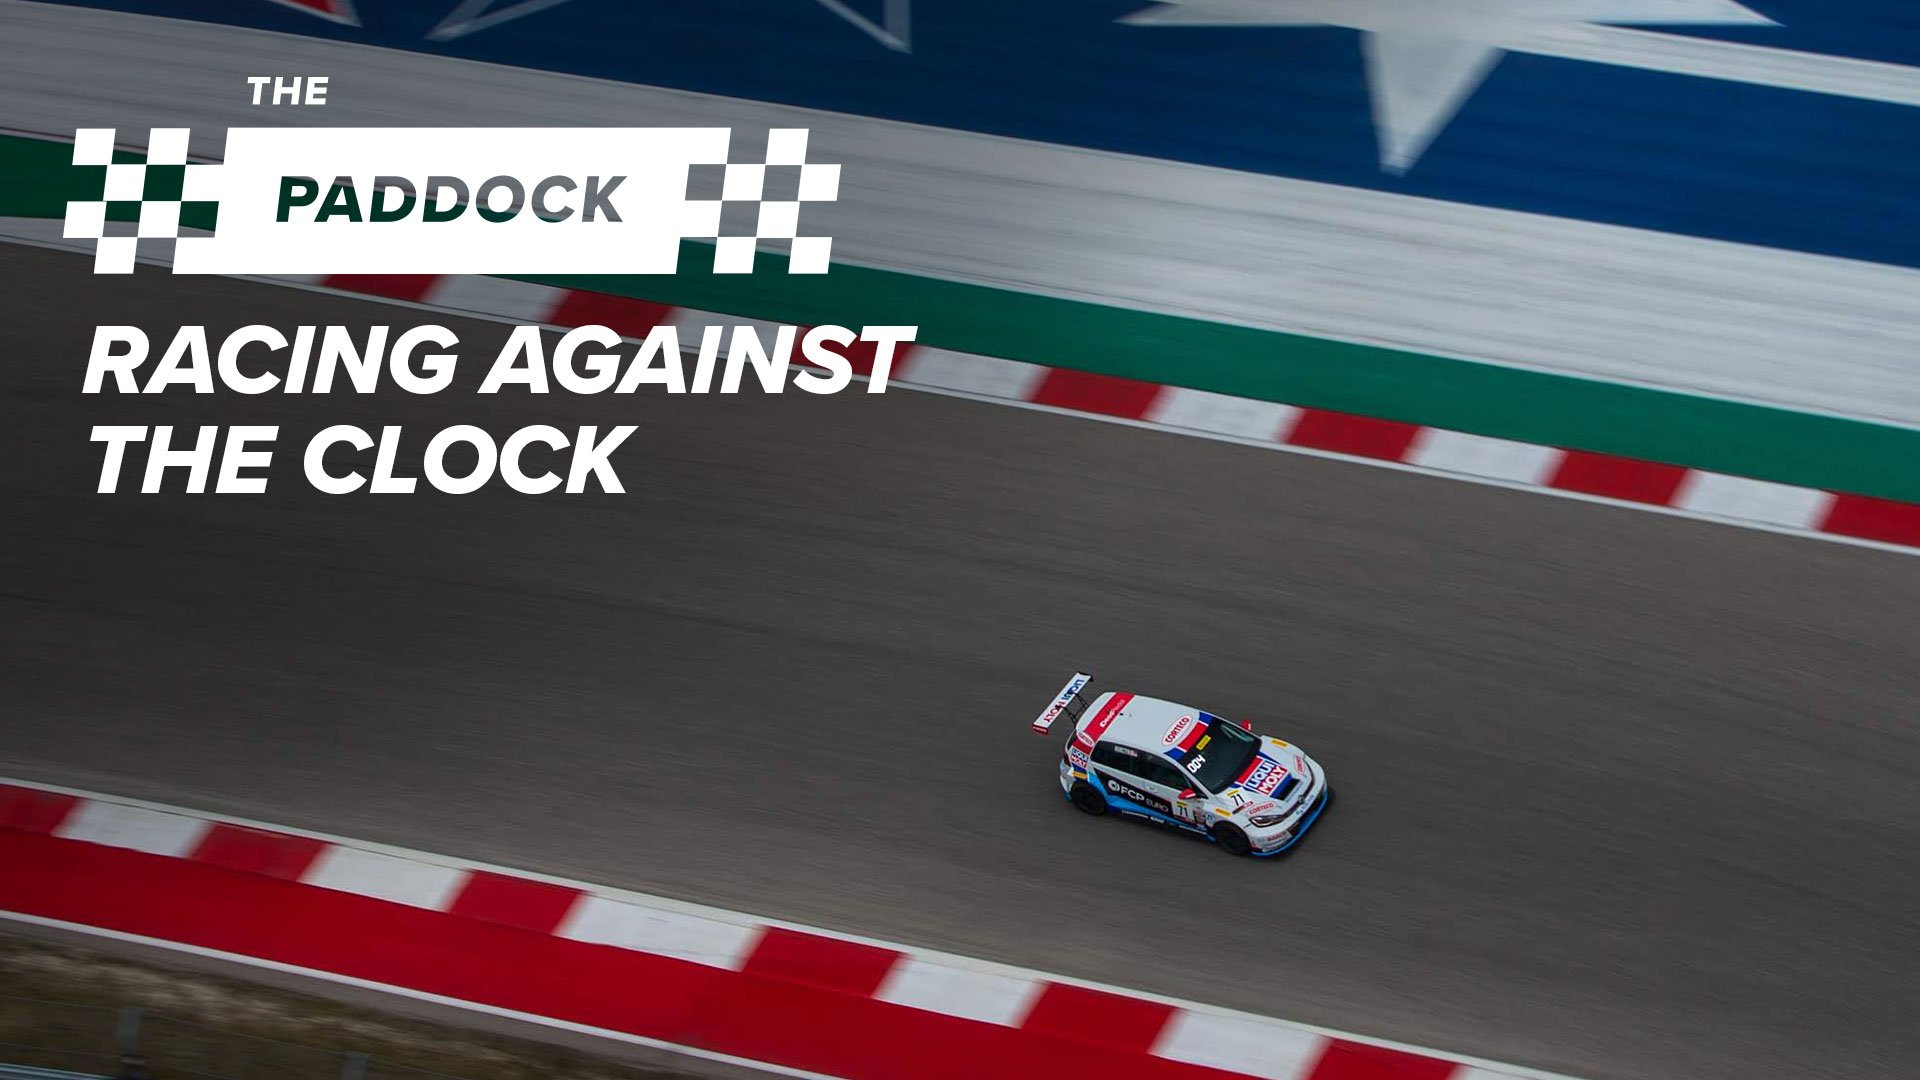 Racing Against The Clock - The Paddock Season Two, Episode Two